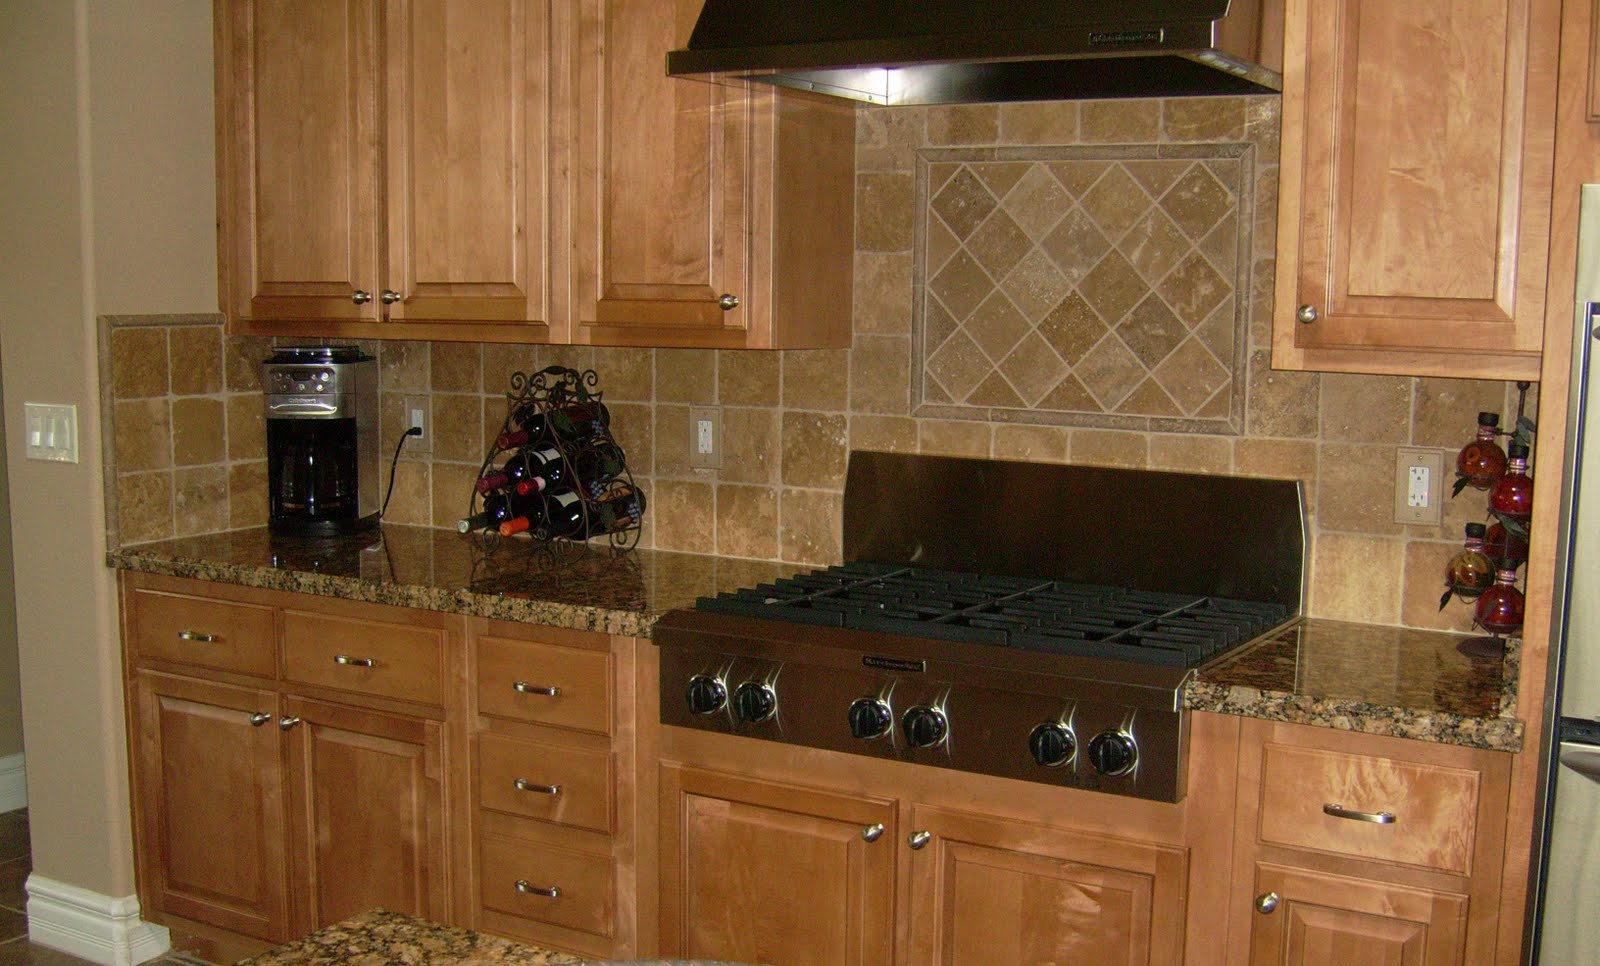 The exciting Inexpensive kitchen backsplash ideas image ideas photo